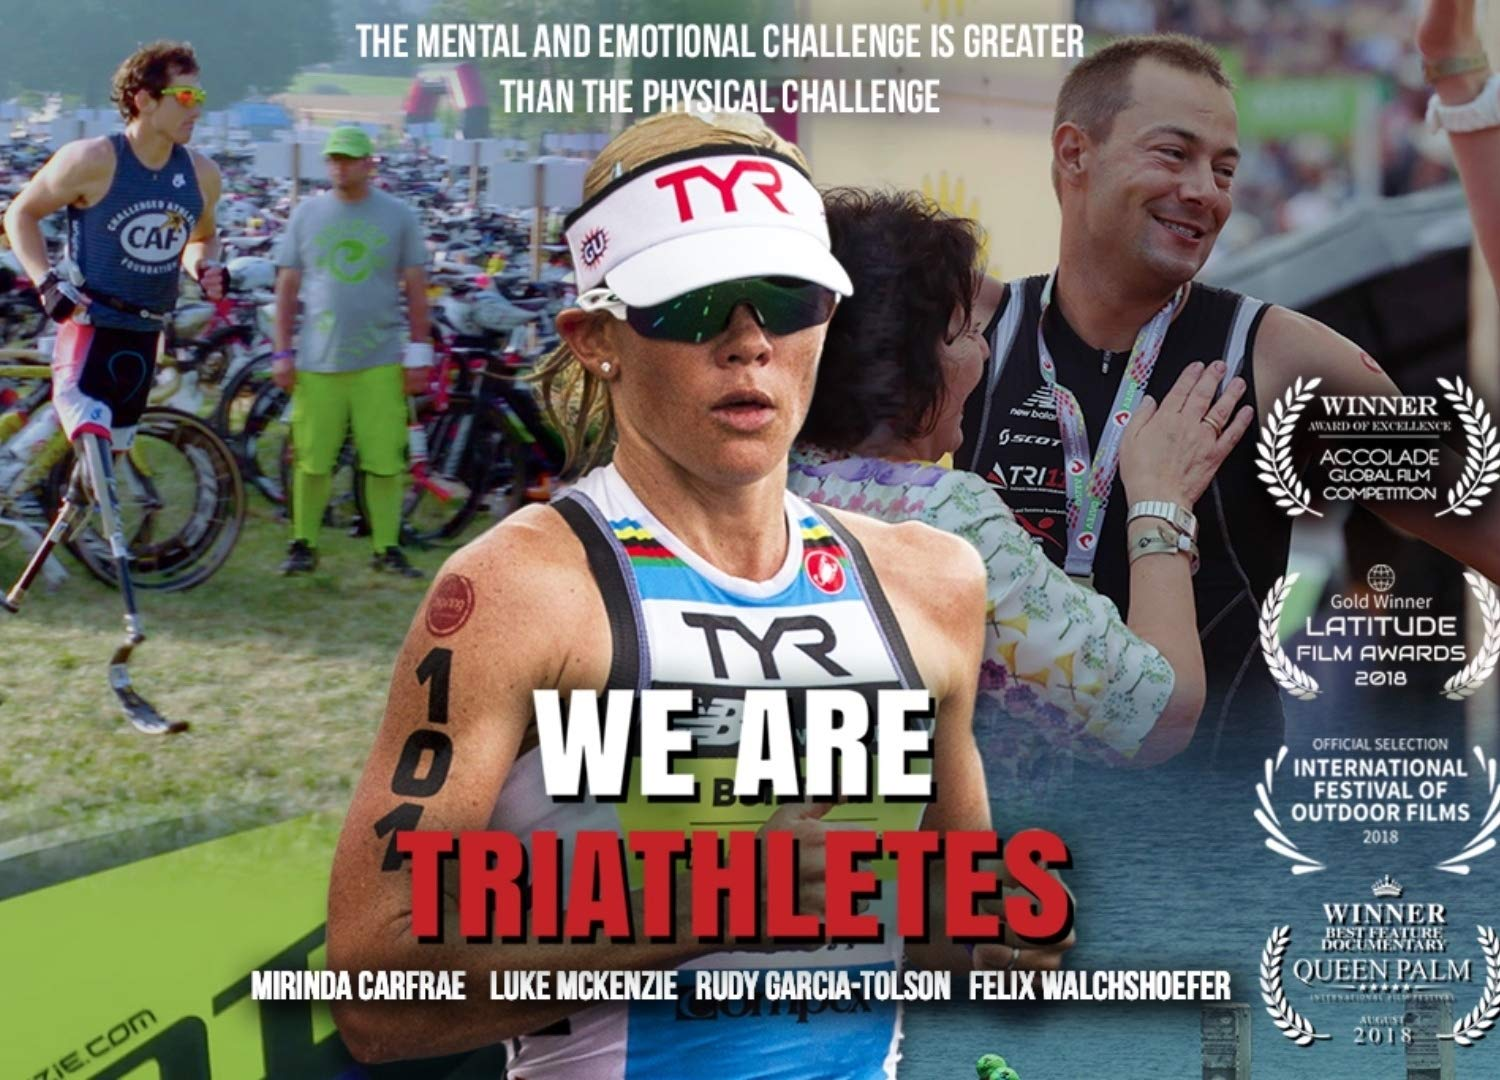 419b990dc80 Amazon.com  We Are Triathletes  Mirinda Carfrae